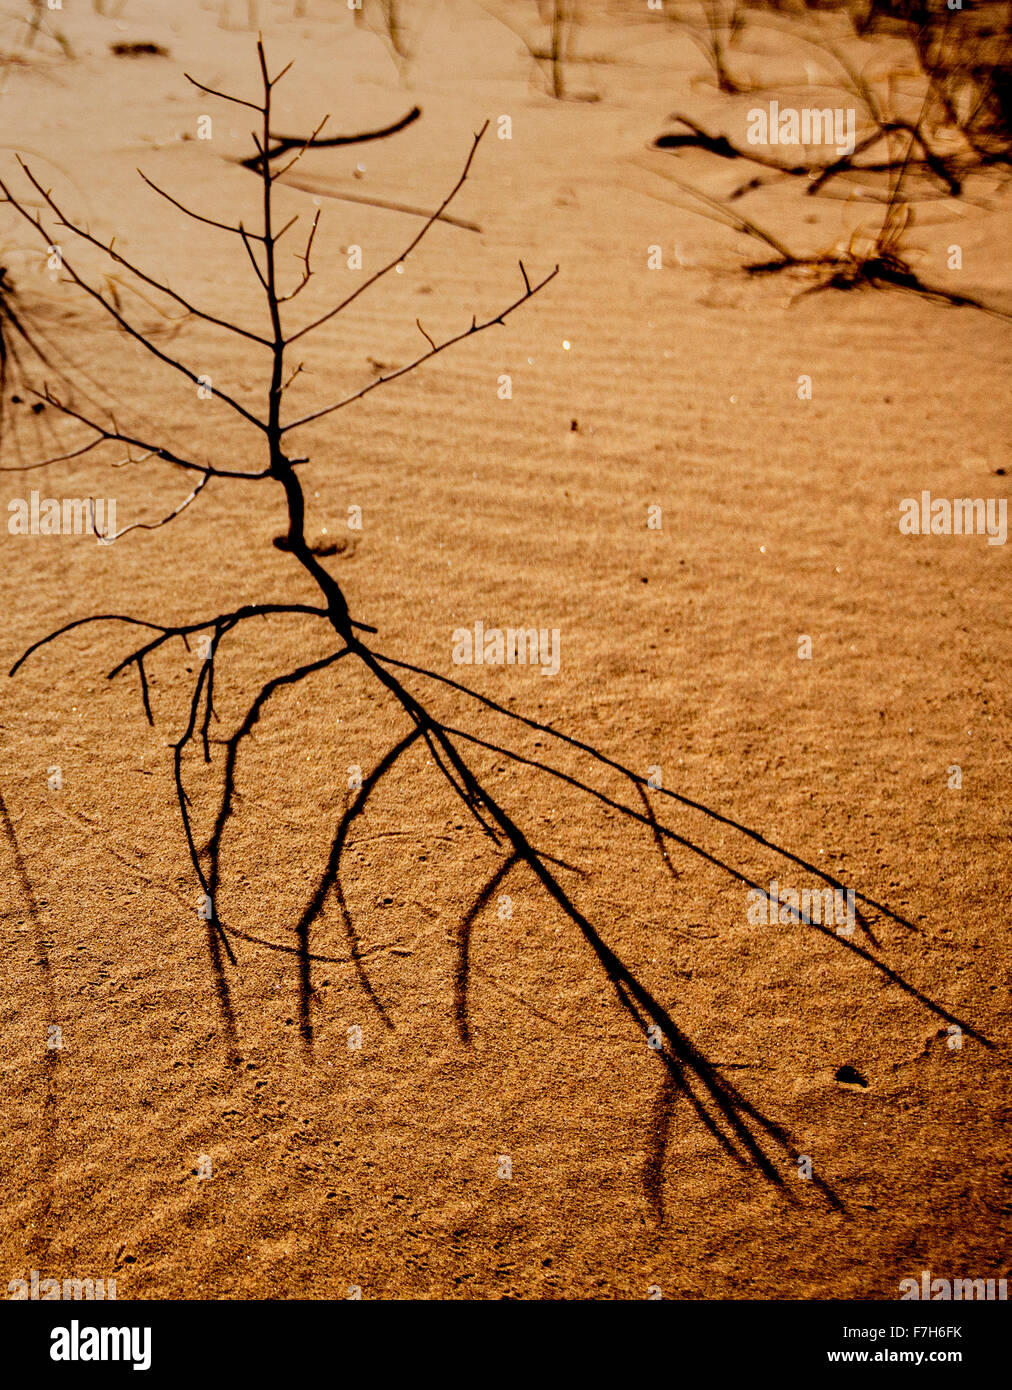 Shadows stretch across the dunes - Stock Image